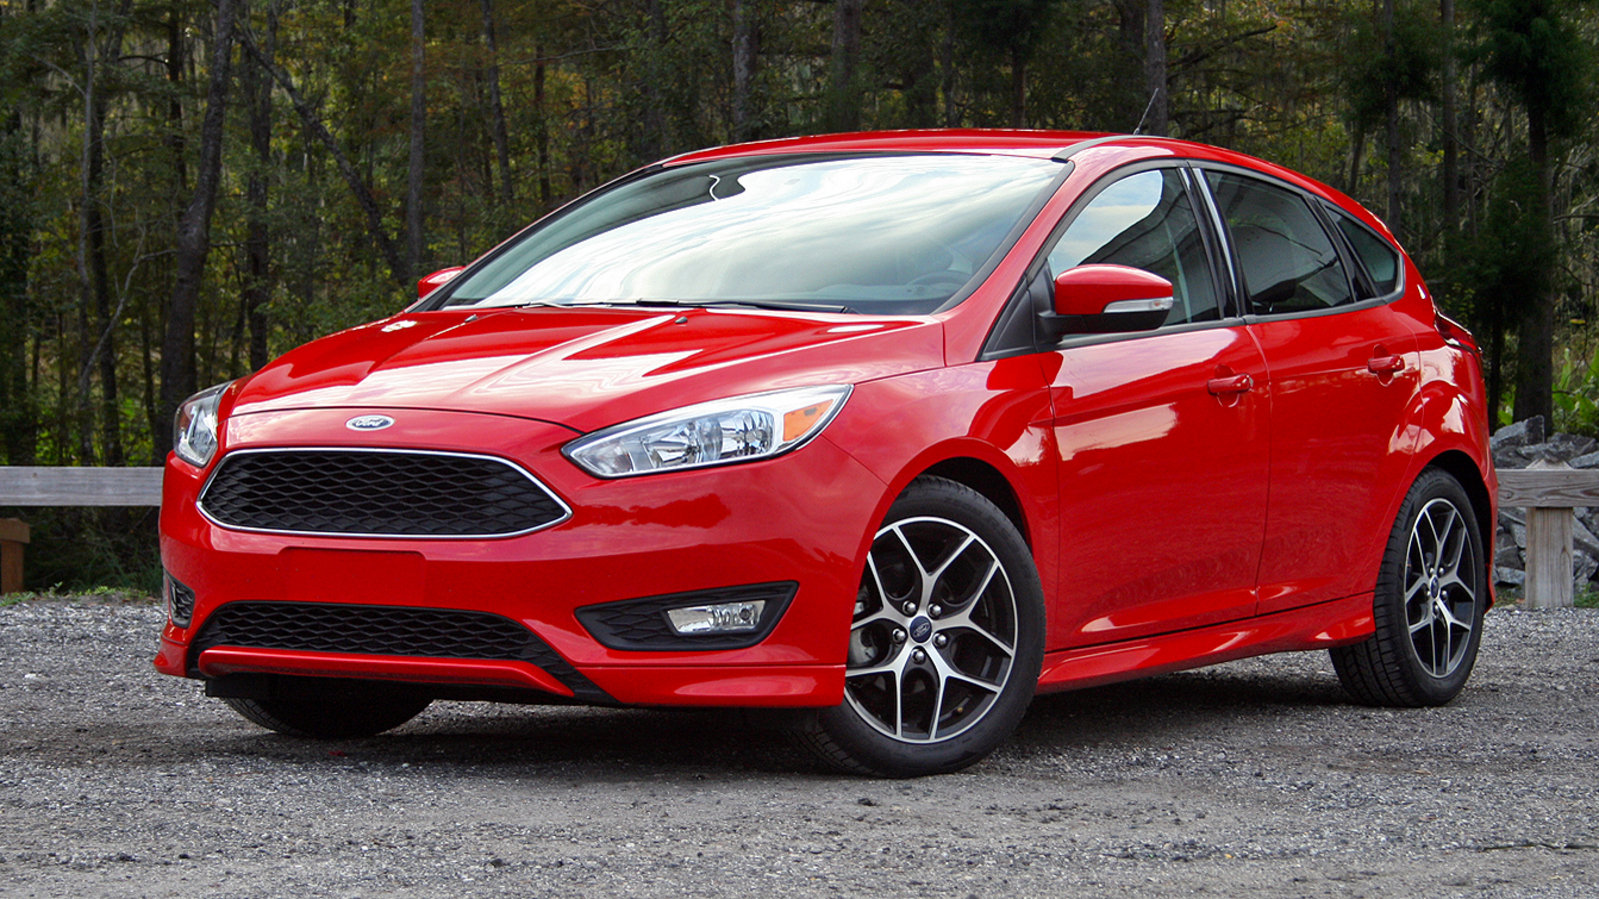 2015 Ford Focus Hatchback Driven Review Top Speed